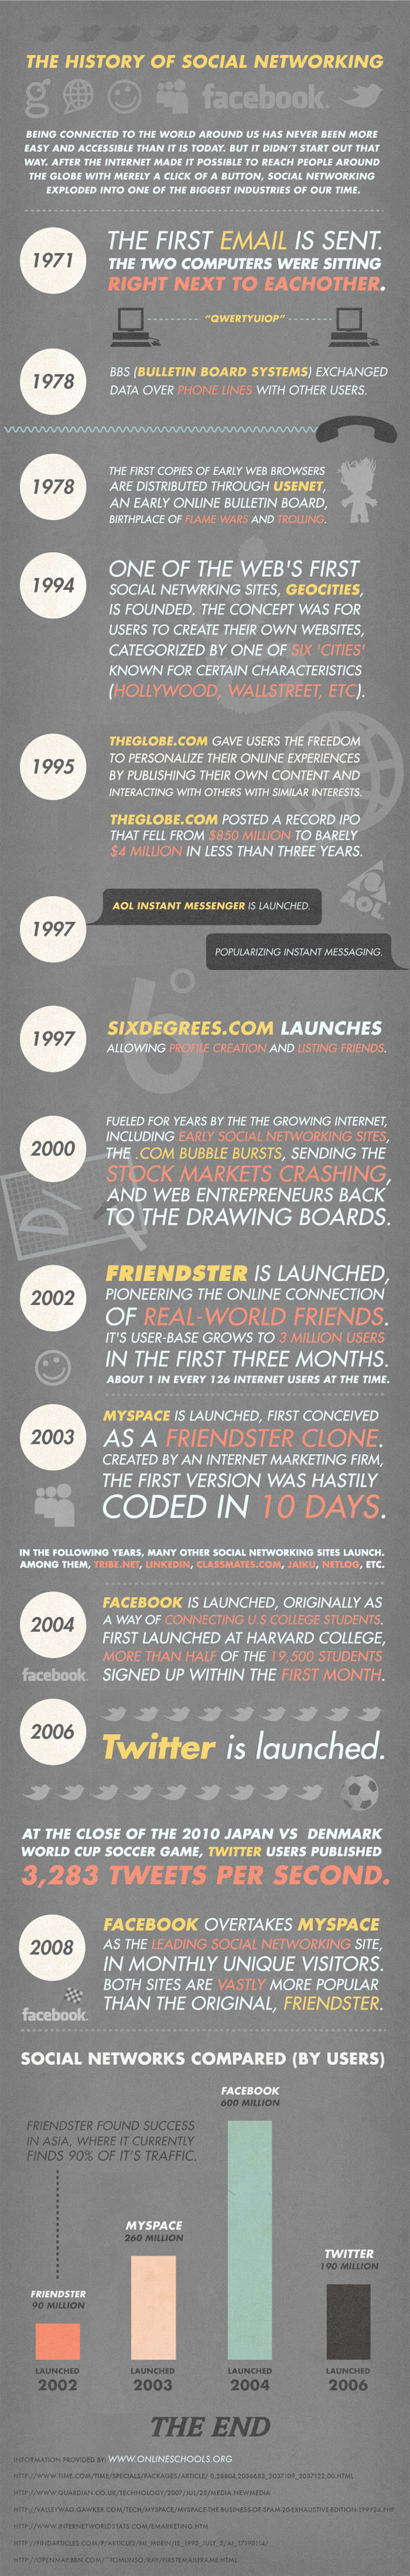 history of social media Internet, technology statistics and infographics